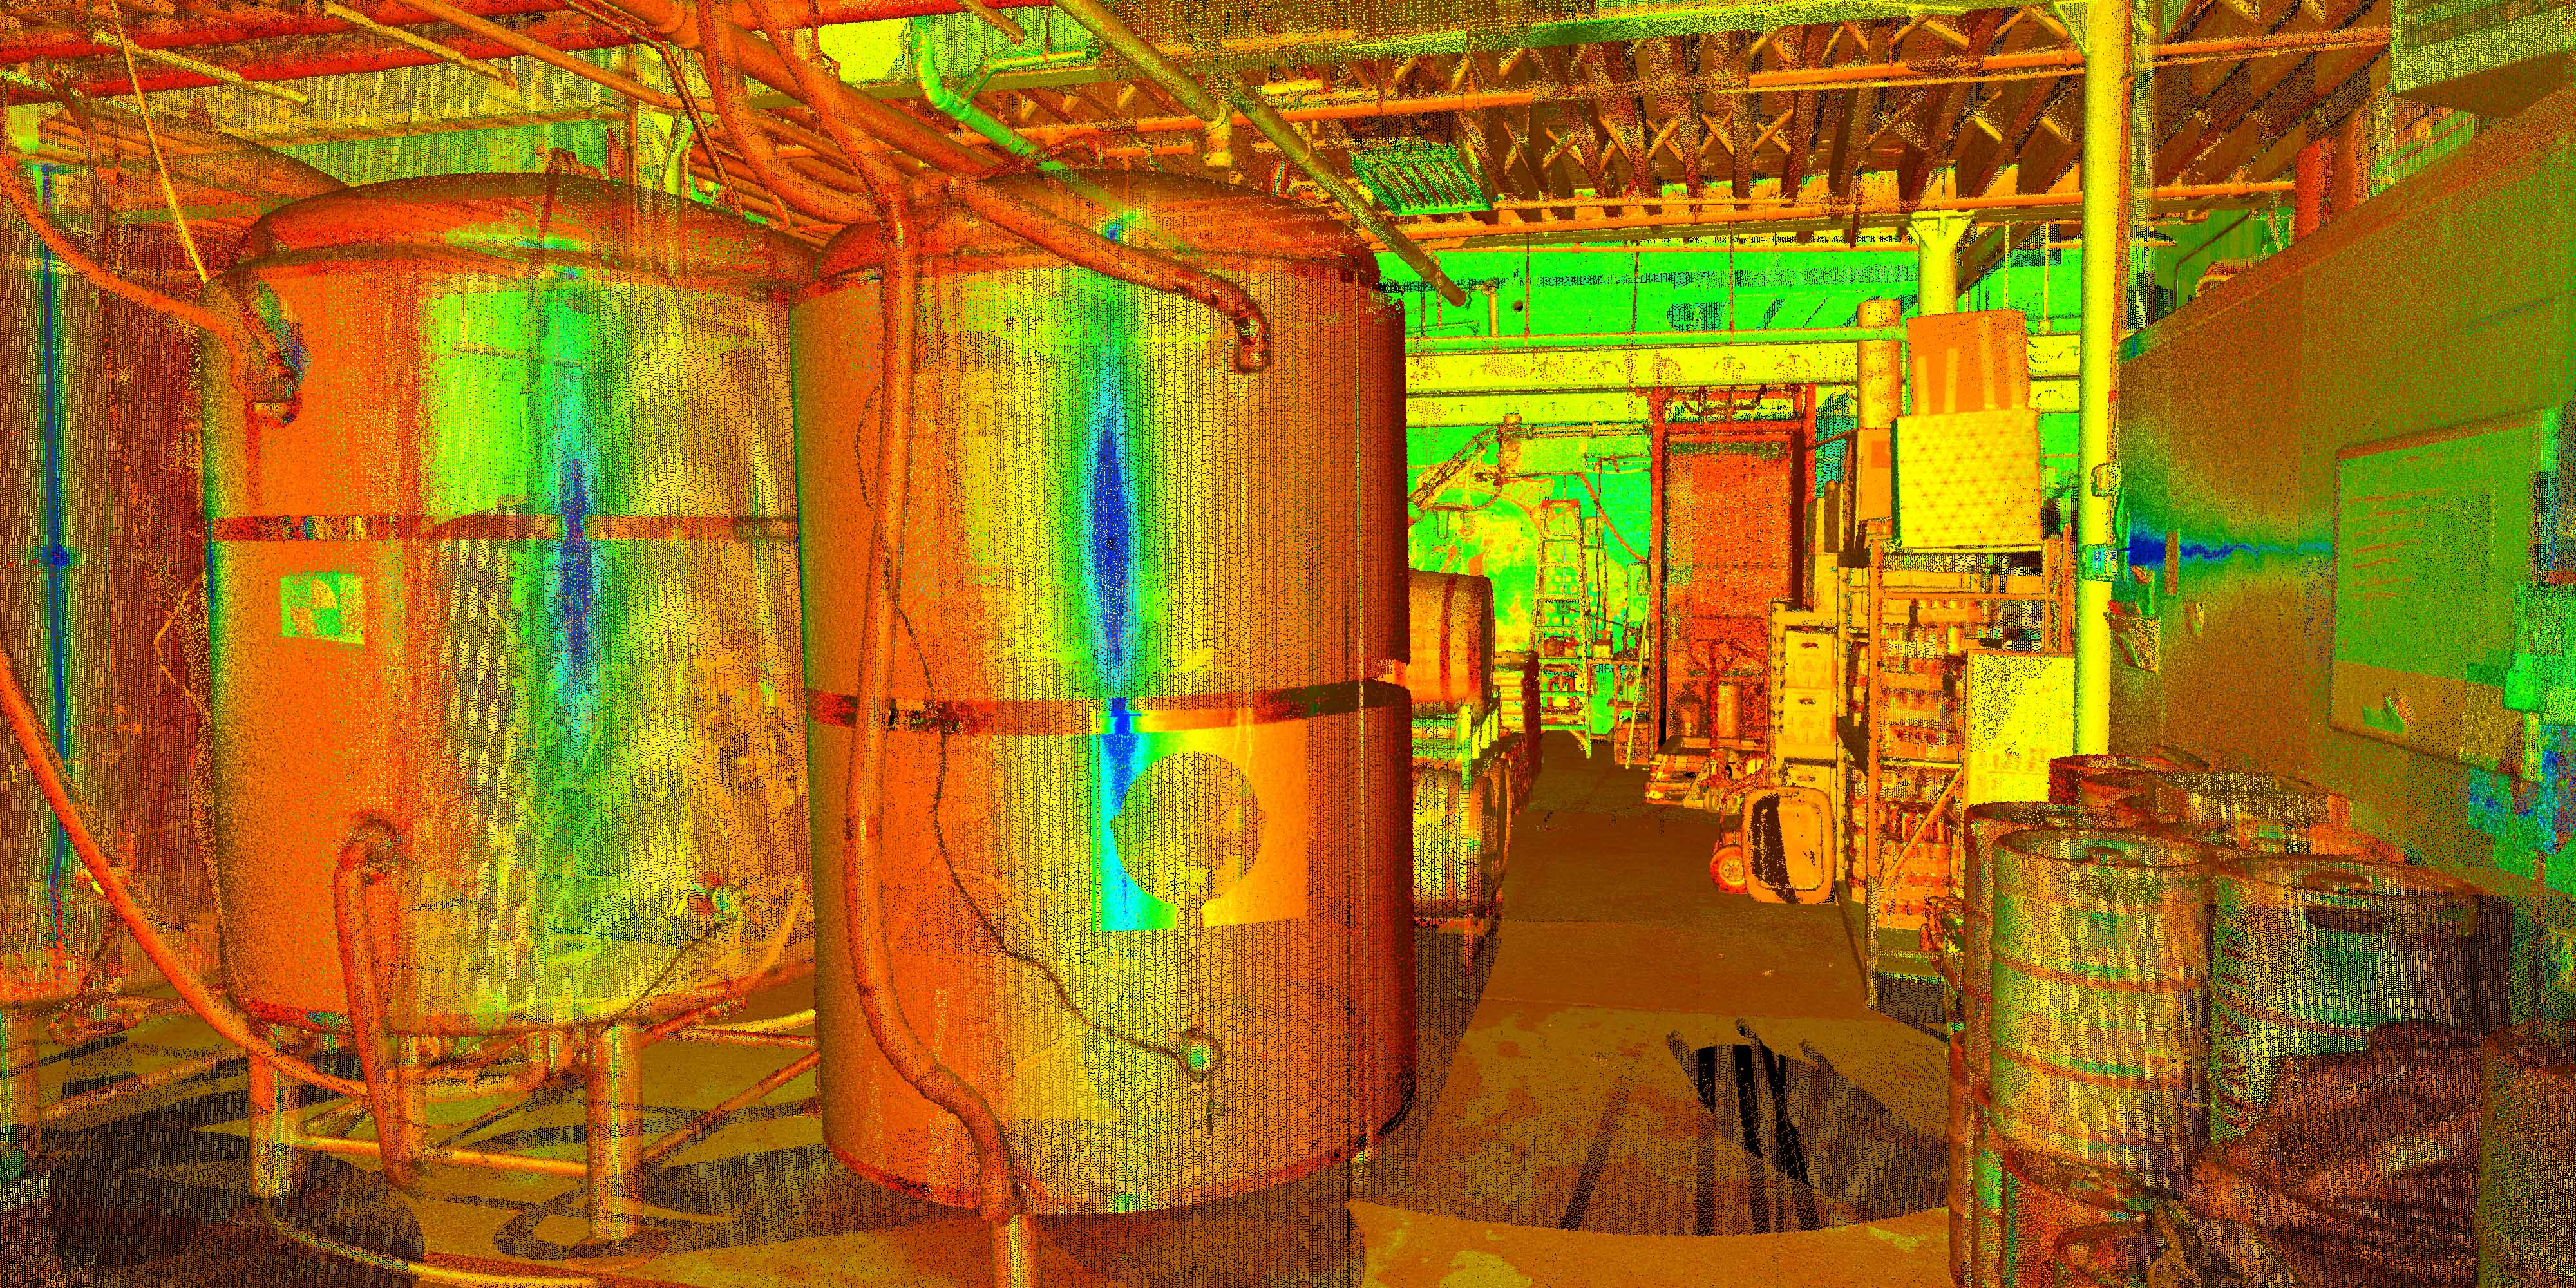 3D Laser Scanning for Breweries - 4 Hands Brewery